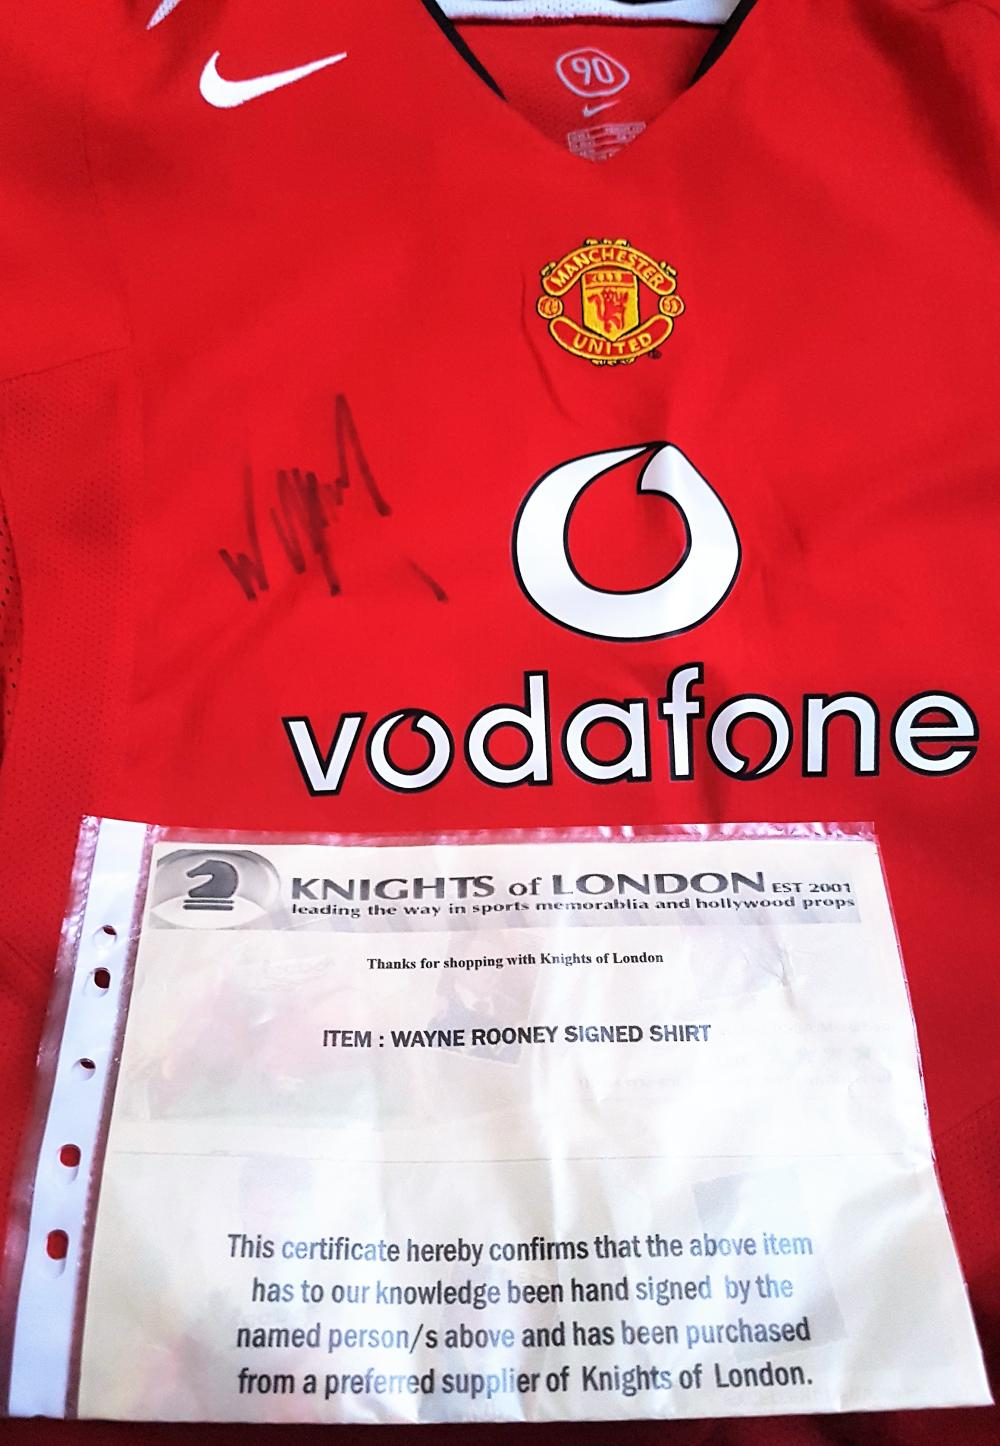 Lot 205 - Wayne Rooney signed Manchester United Shirt collected at Manchester United's Training Ground in Carrington